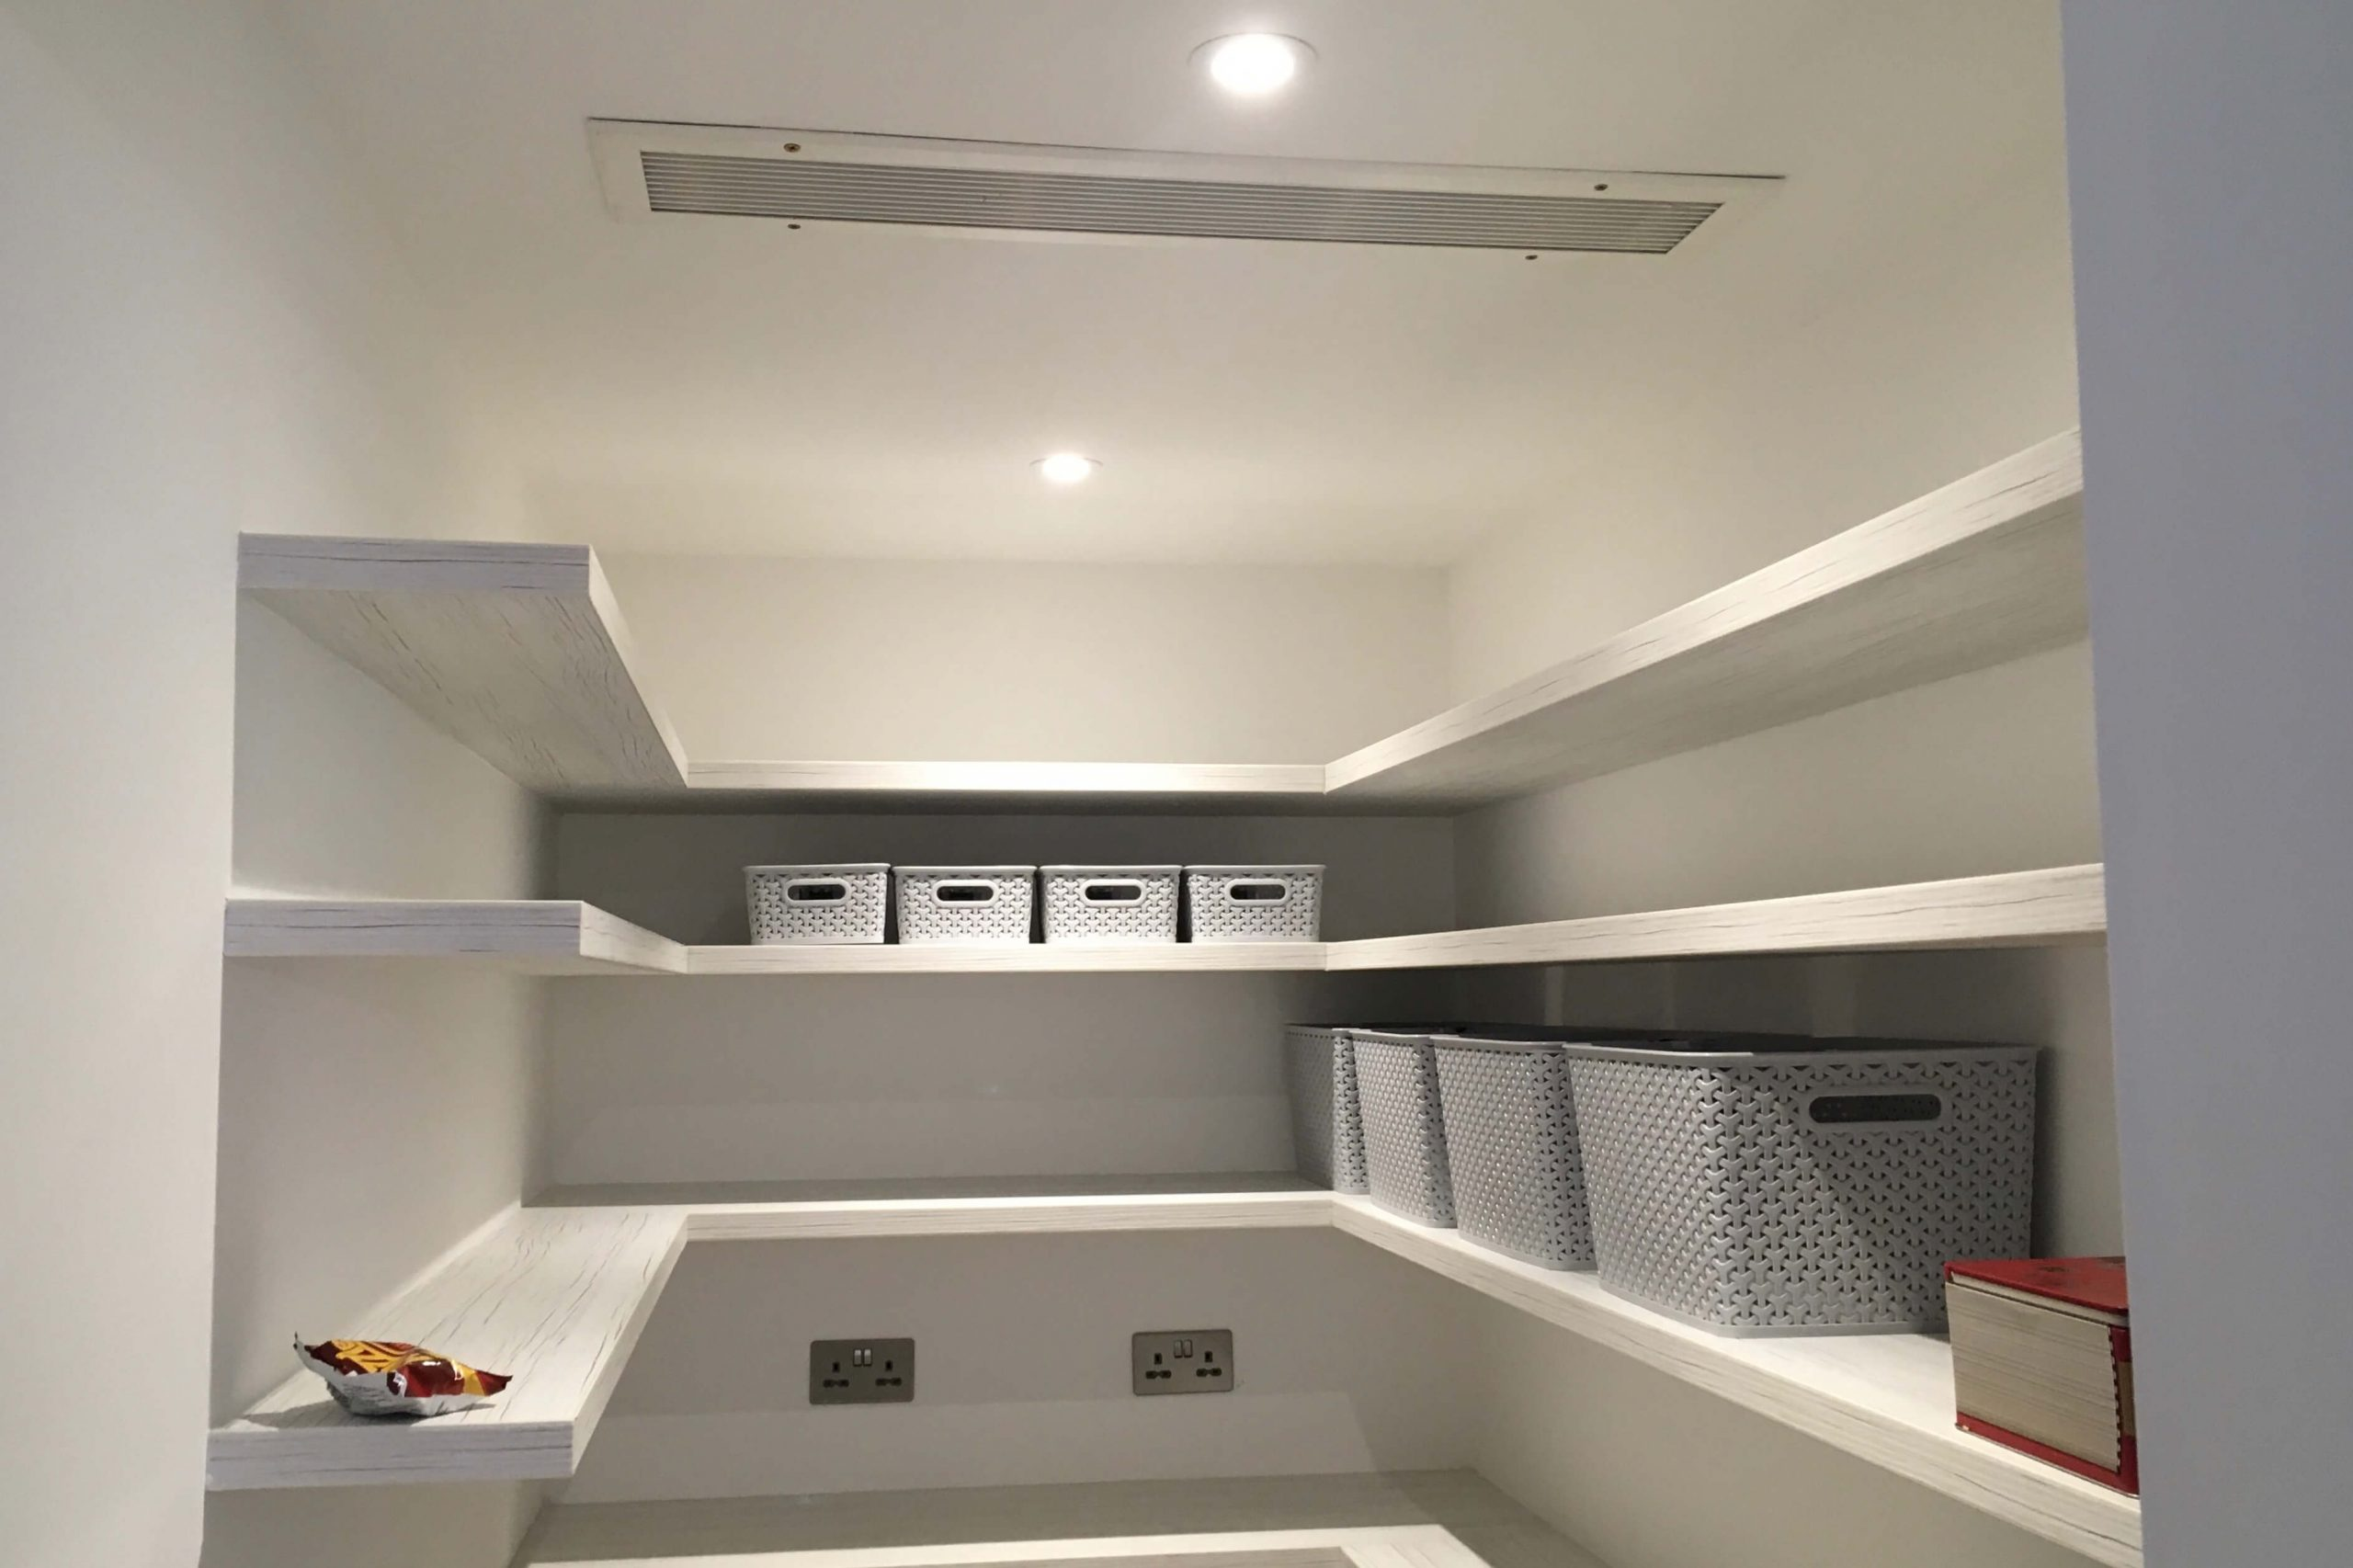 Scandia Hus with Mitsubishi air con and a full MVHR system by SubCool FM - inside the hidden chill room / larder